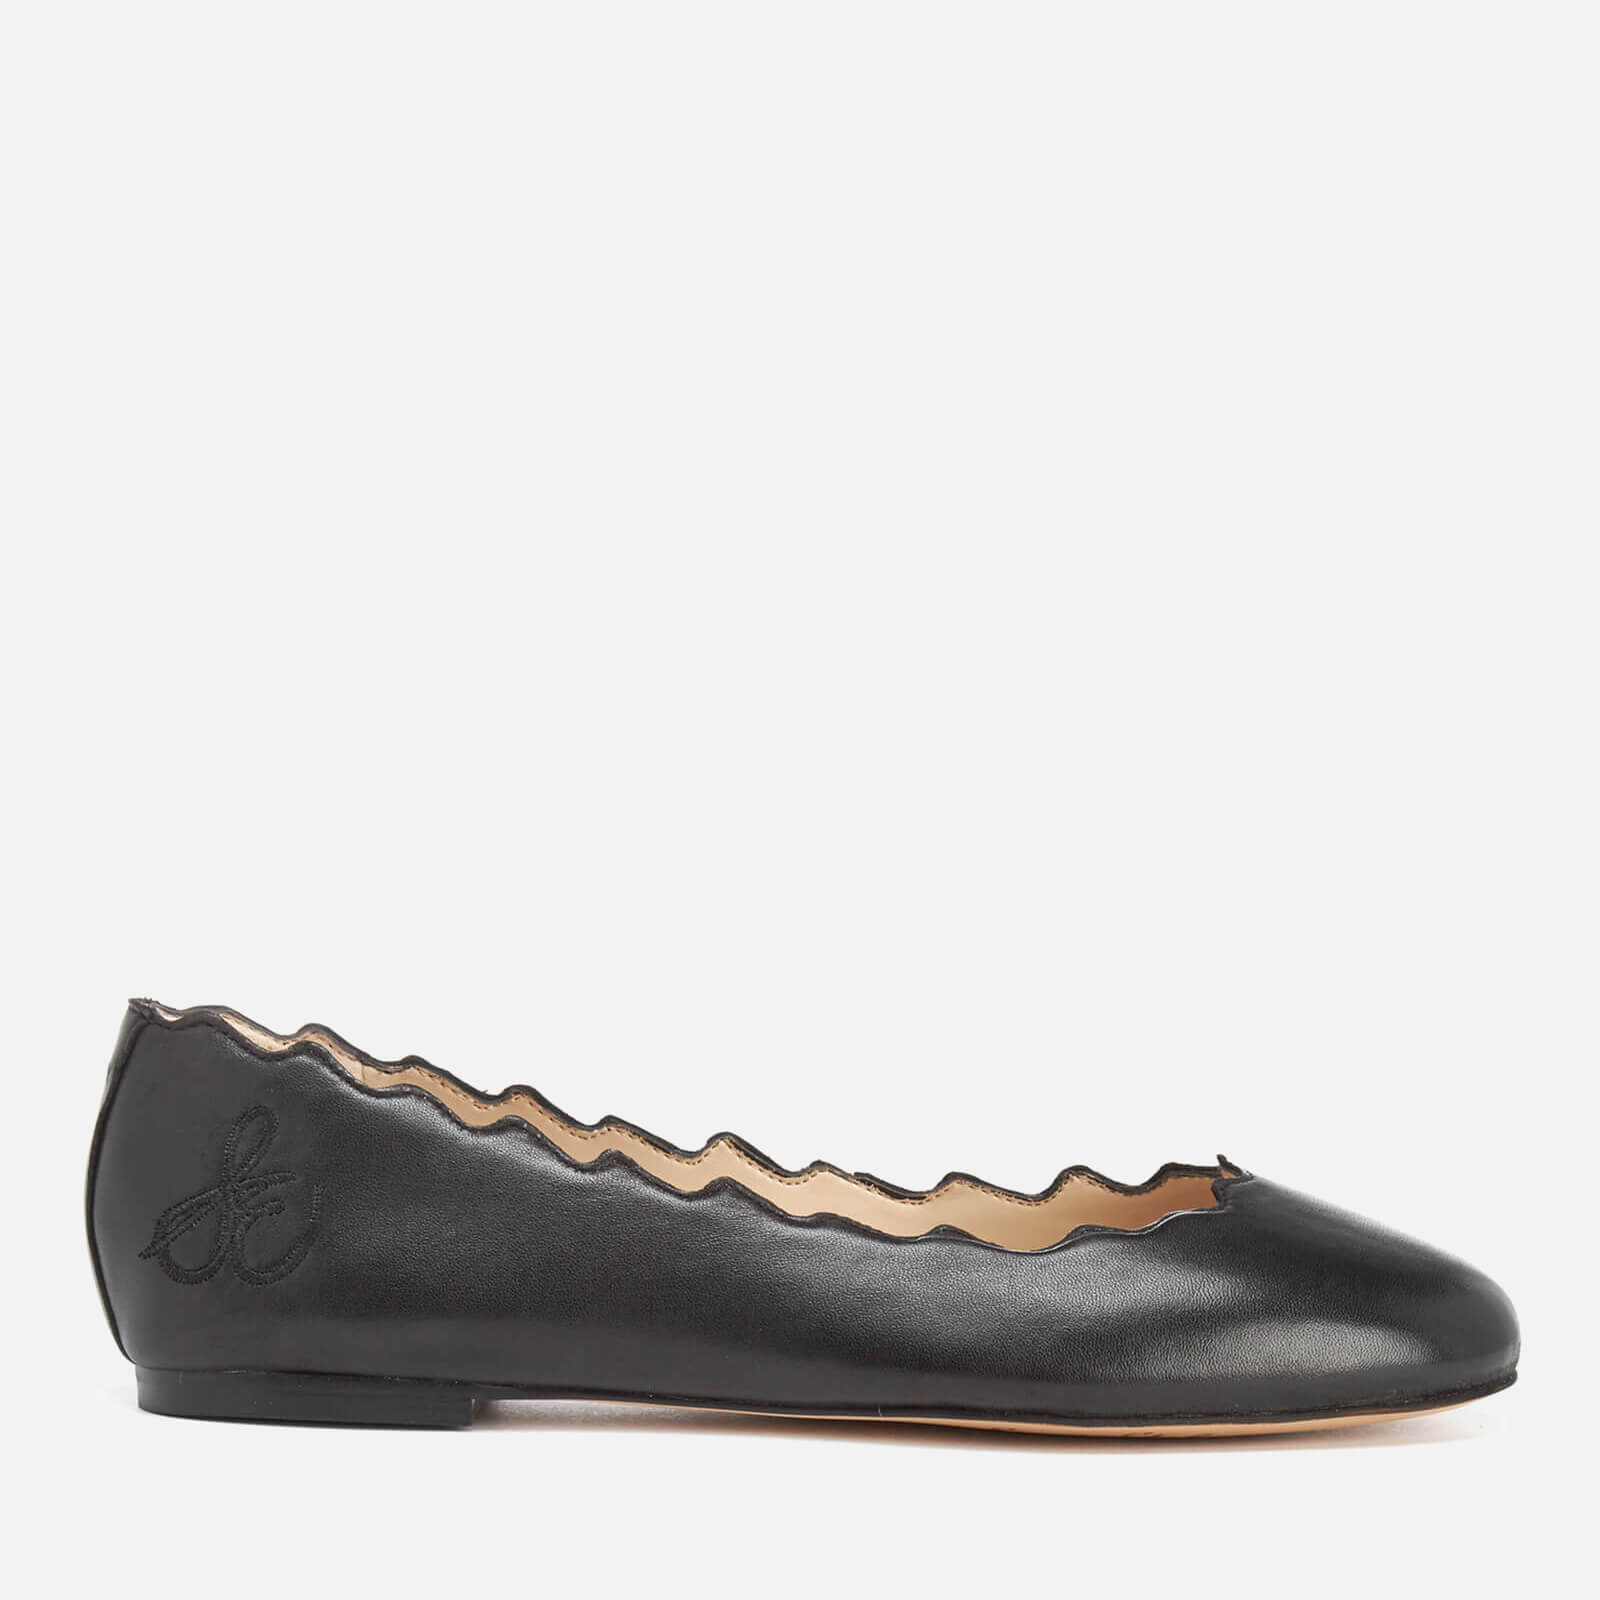 74acc4e429446 Sam Edelman Women s Francis Ballet Flats - Black - Free UK Delivery over £50